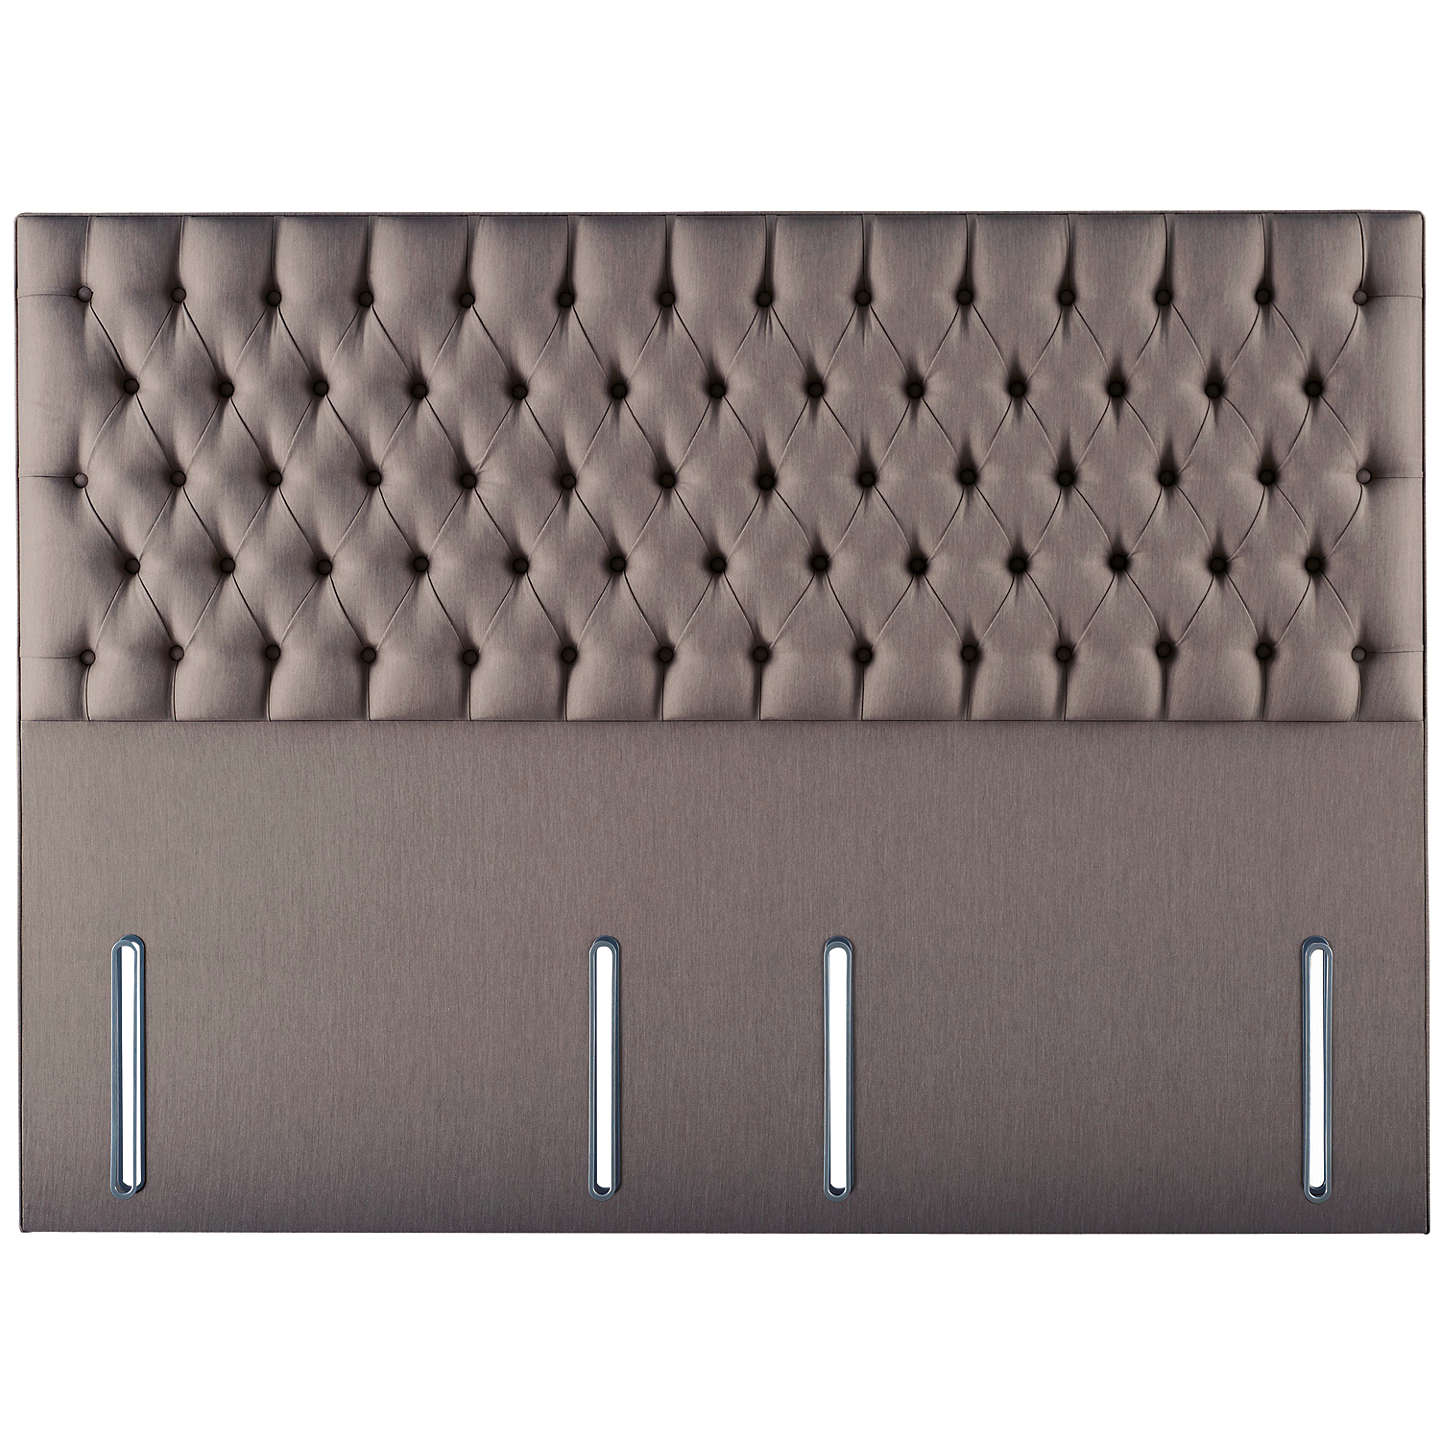 Hypnos Eleanor Full Depth Headboard Small Double Imperio Grey Online At Johnlewis